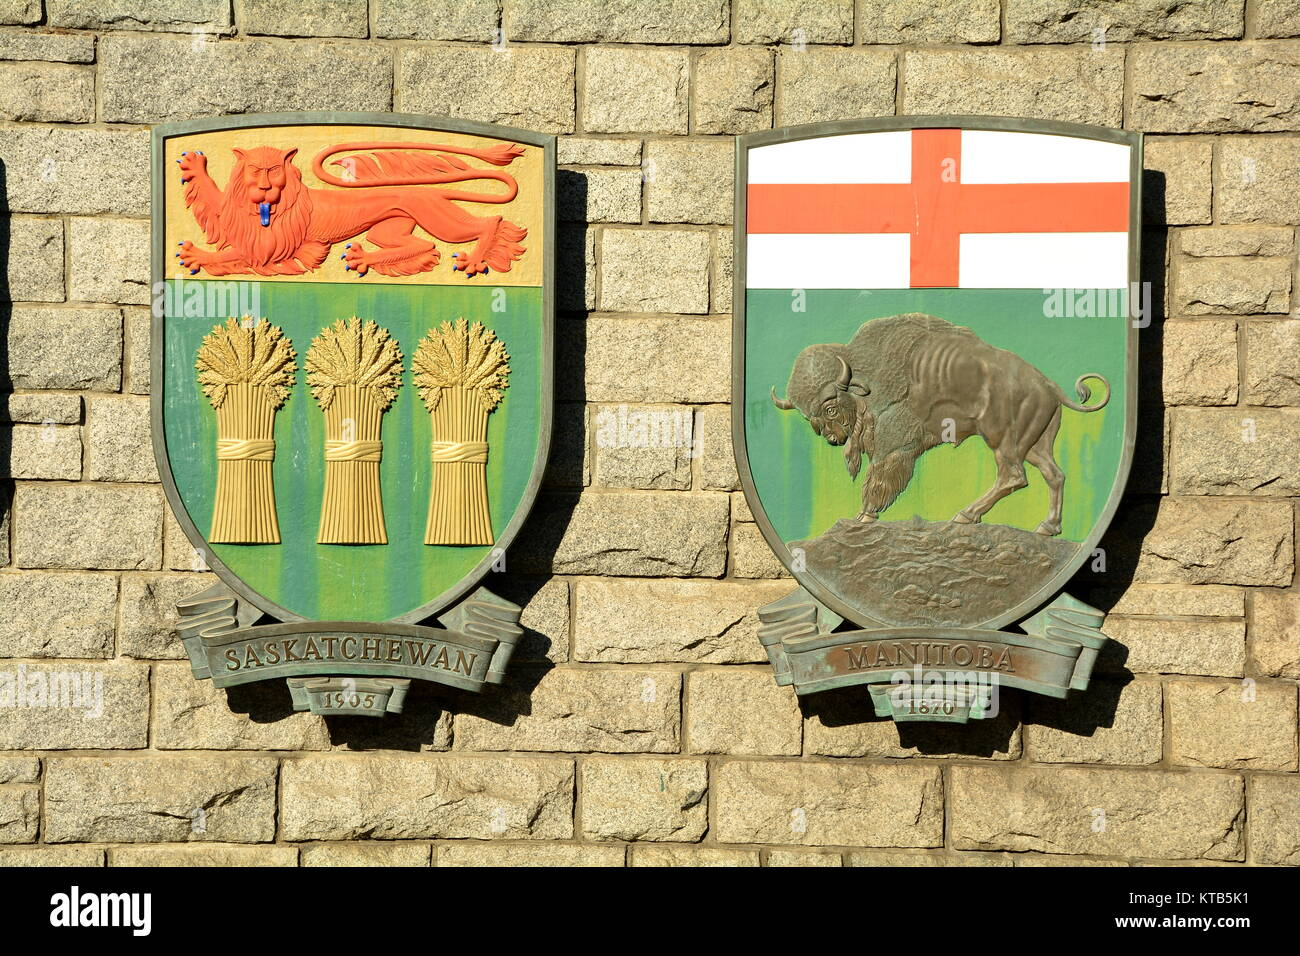 Coats of arms for the Canadian provinces of Saskatchewan and Manitoba. - Stock Image